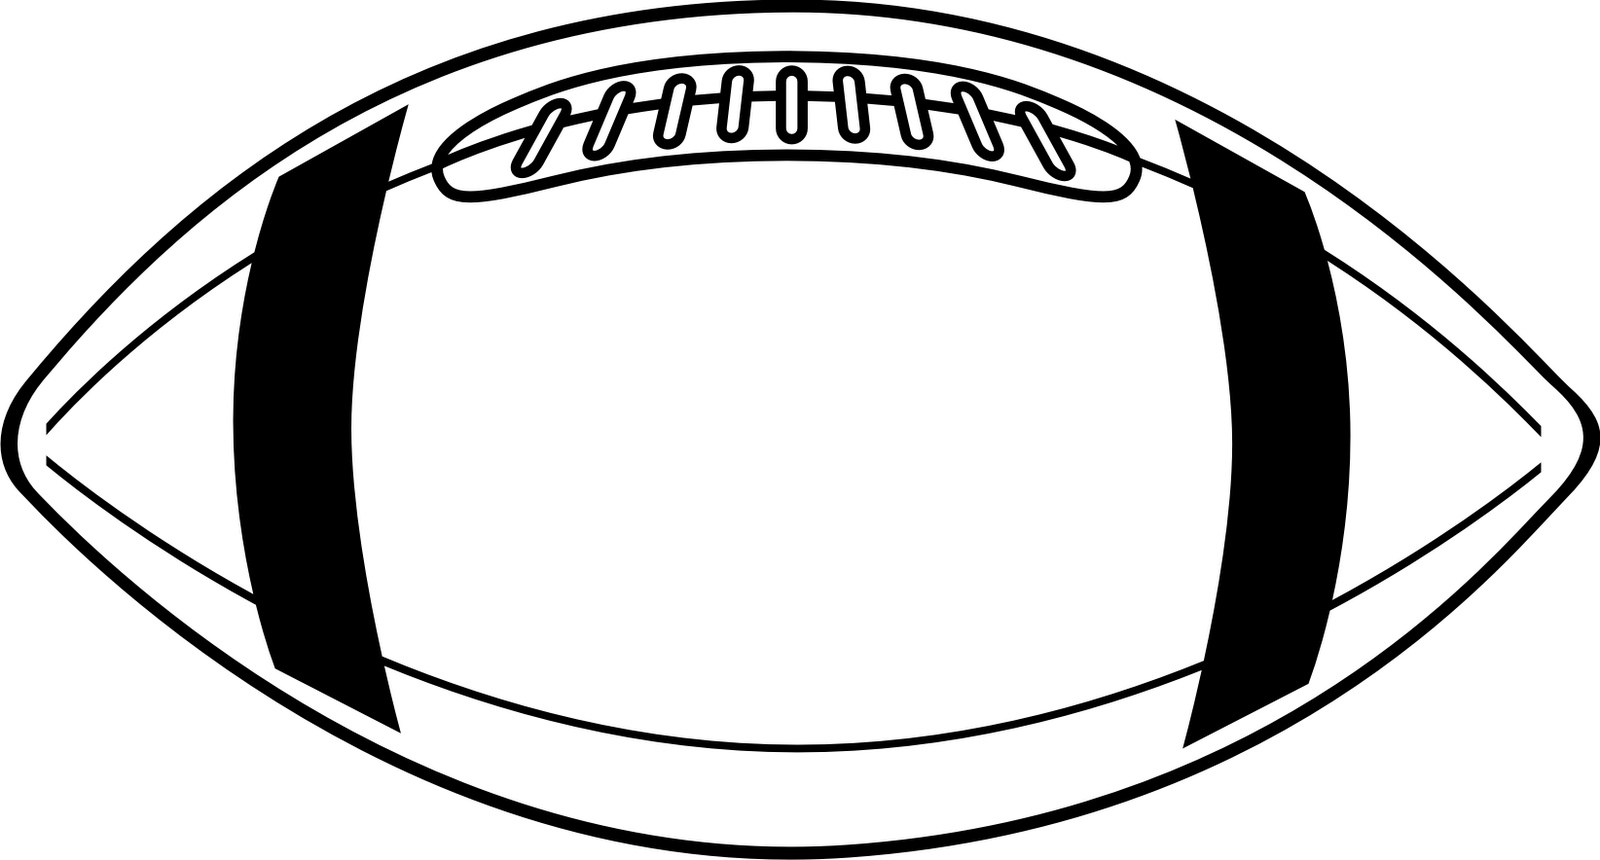 Clip Art Football Stadium Fotosearch Search Clipart Illustration - Fotosearch Free PNG HD